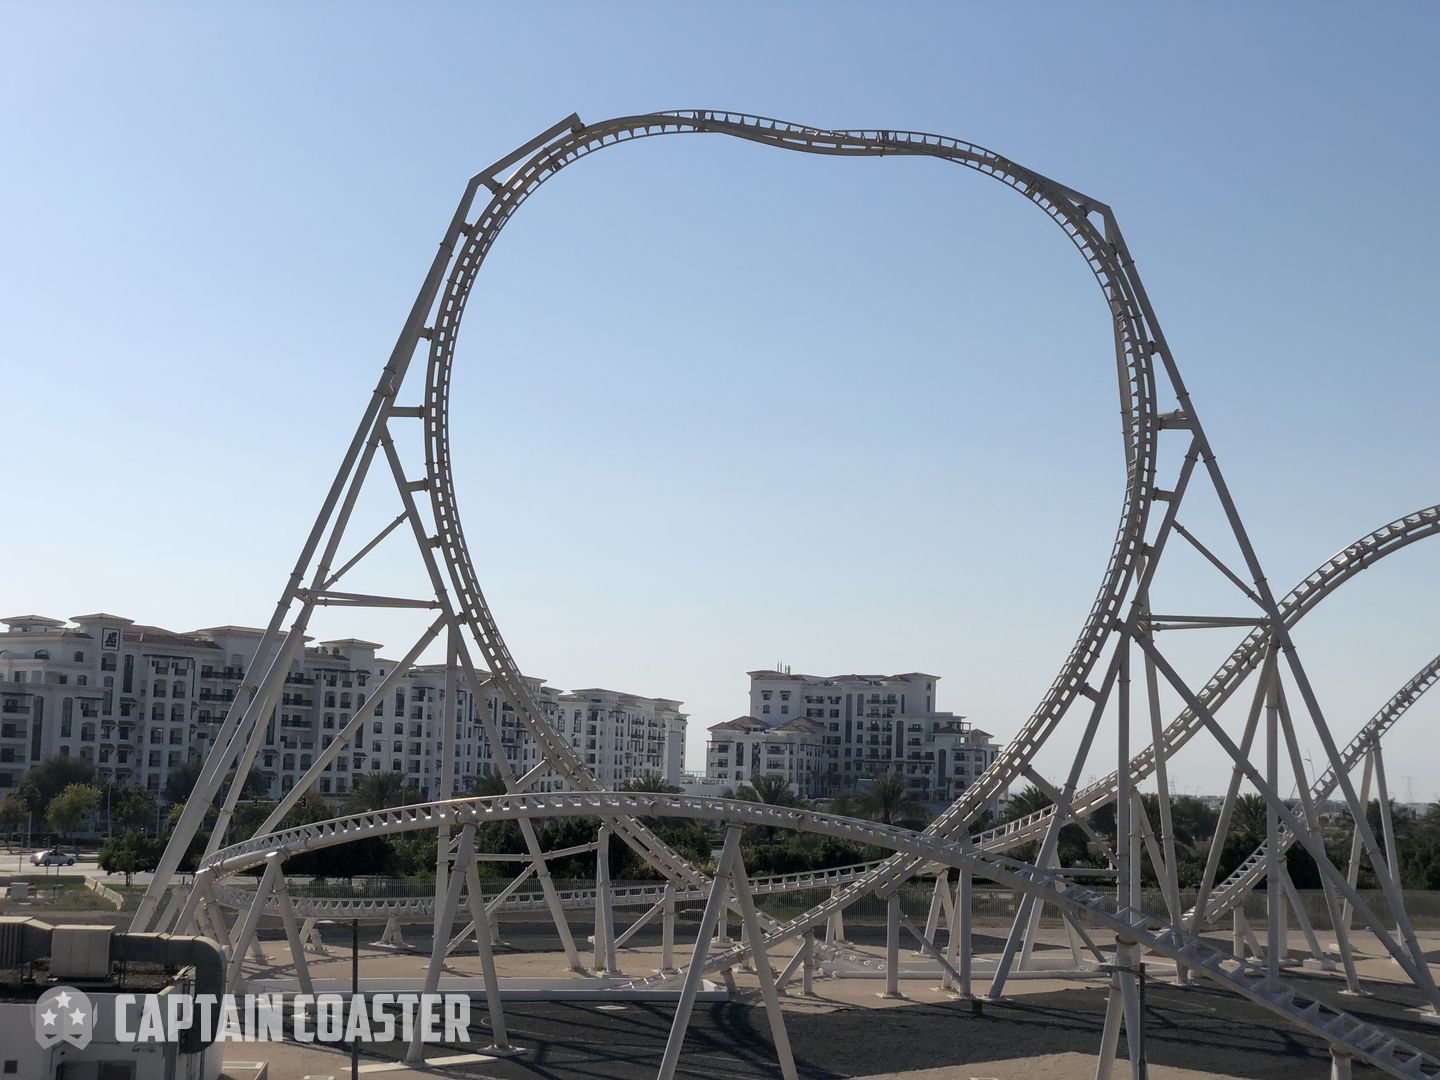 Flying Aces Ferrari World Abu Dhabi Captain Coaster